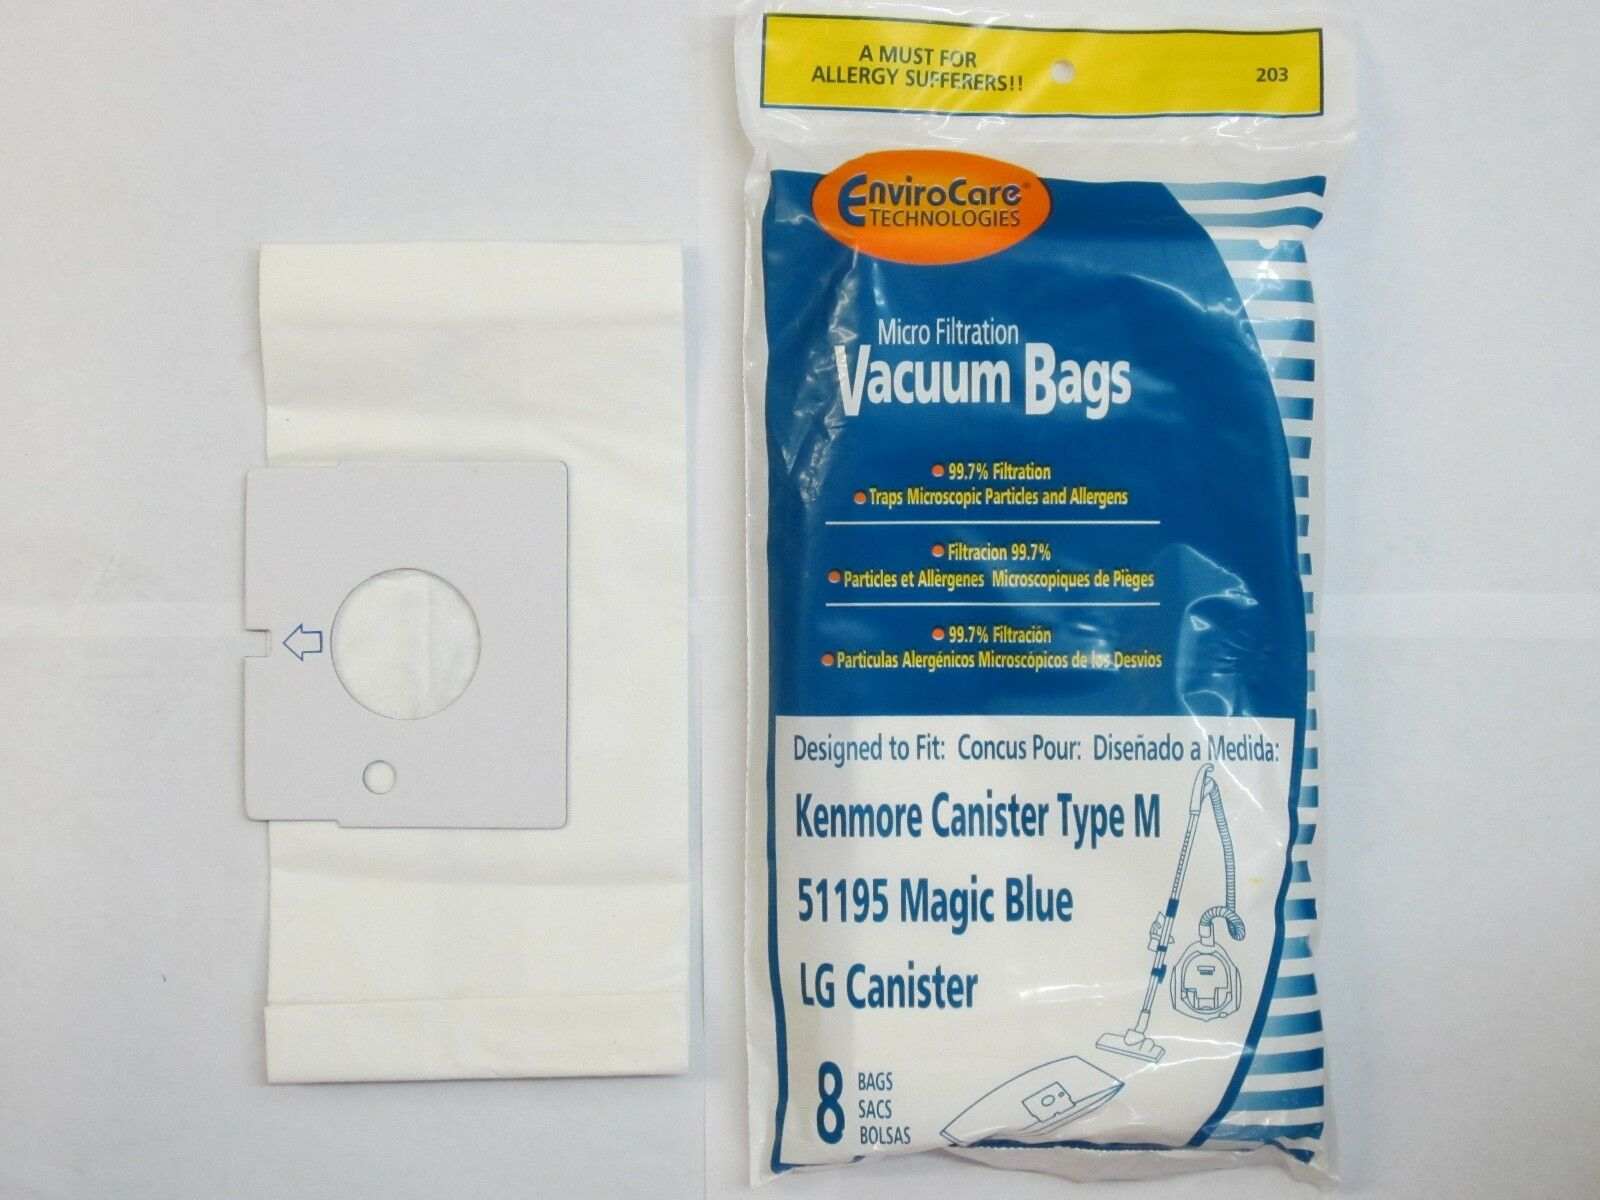 Envirocare Replacement Vacuum Bags For Kenmore 51195 Magic Blue Canisters 8 Pack 203 Christmas Ornament